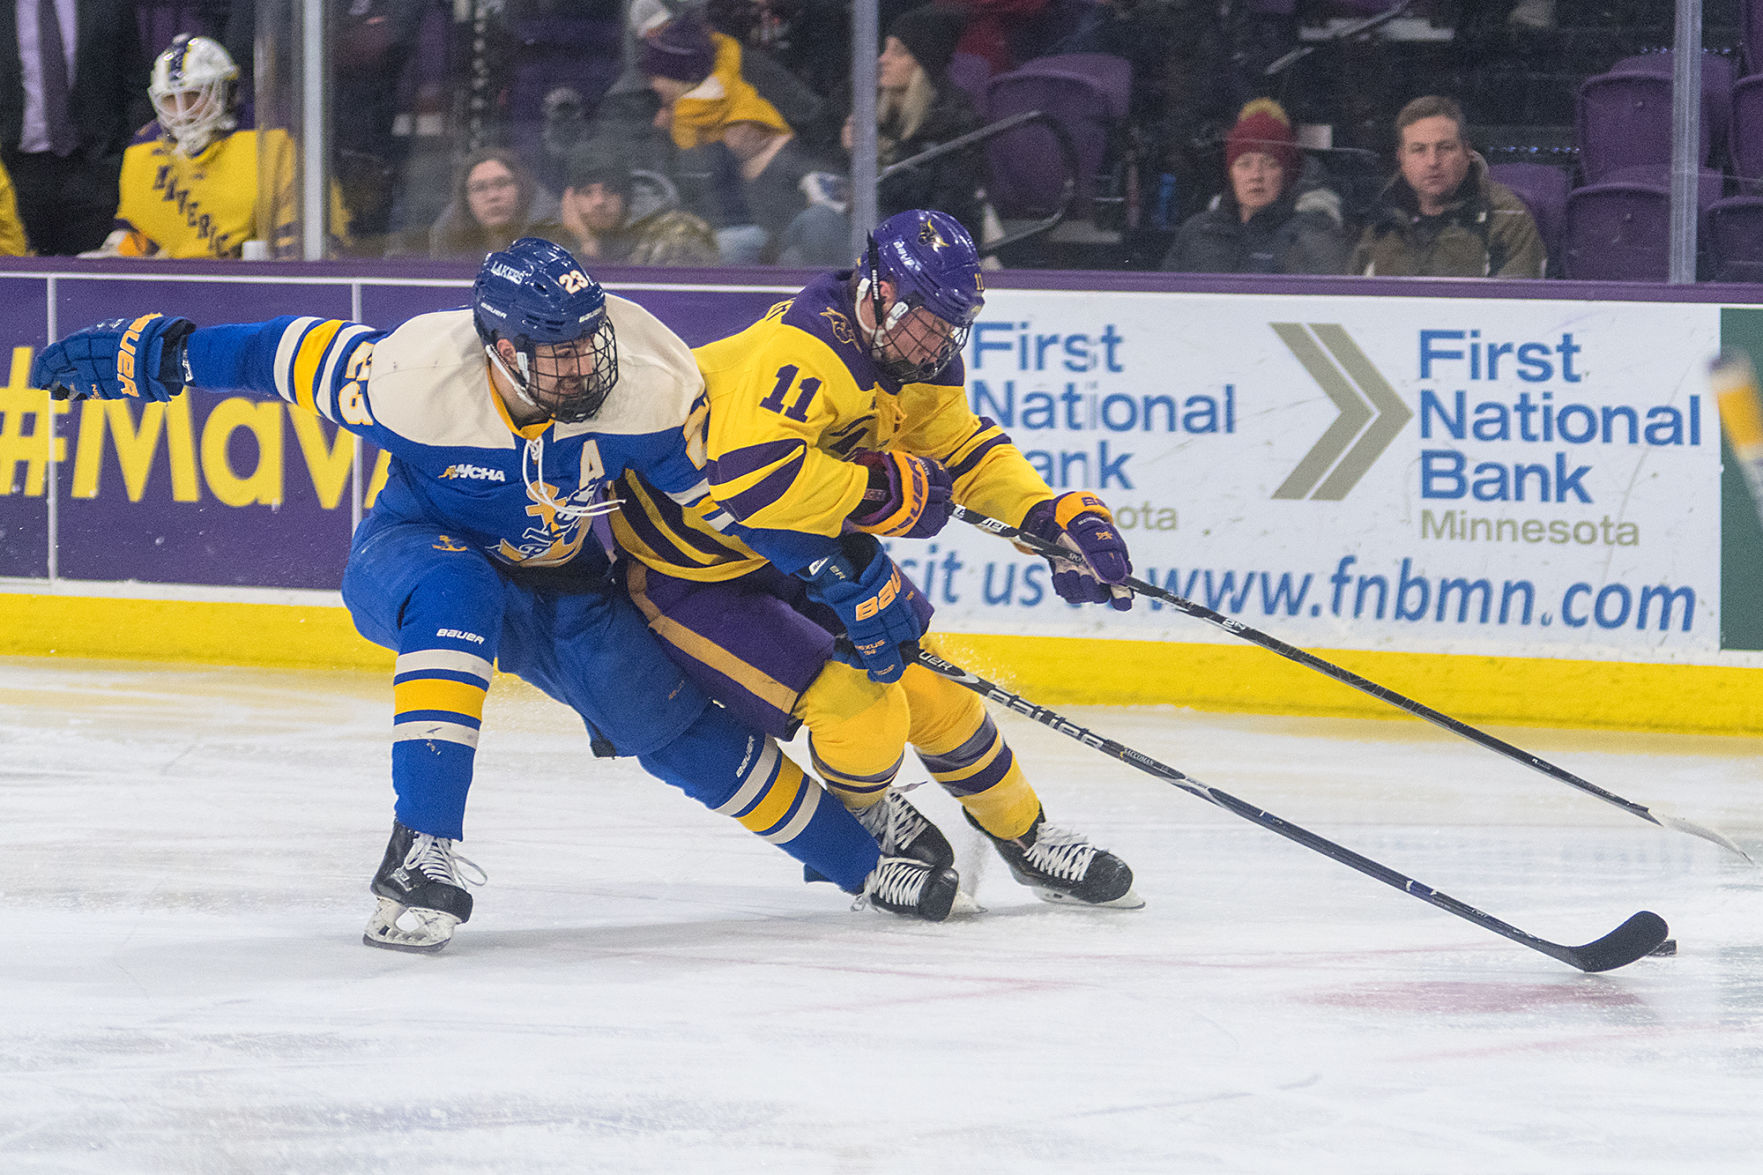 WCHA.: No. 6 Mavericks Stay Perfect At Home, Defeat No. 18 Lakers